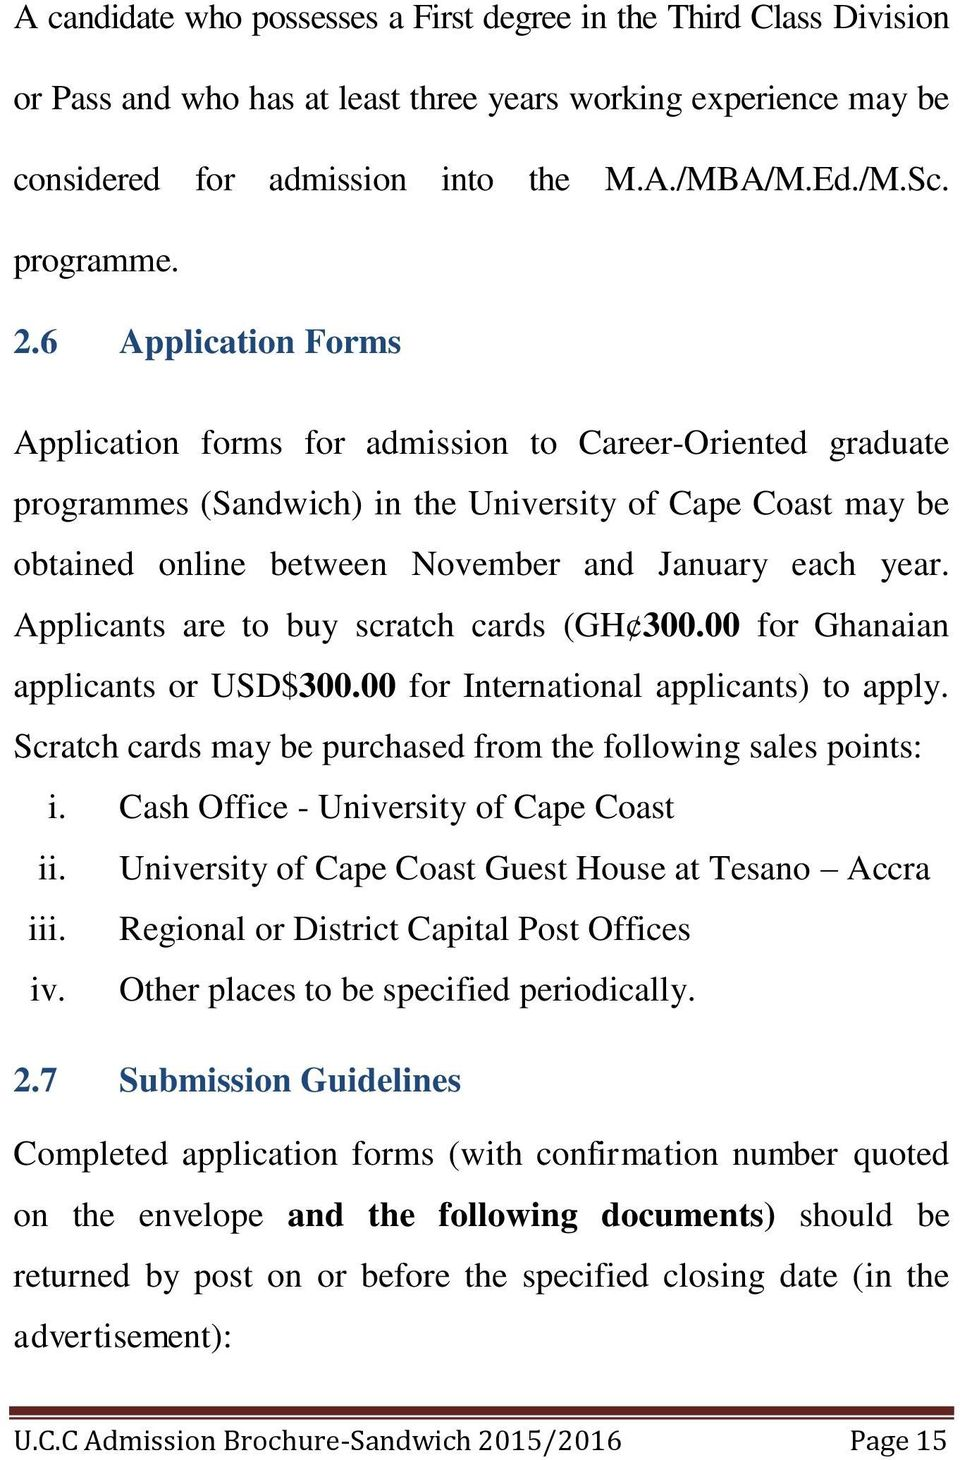 6 Application Forms Application forms for admission to Career-Oriented graduate programmes (Sandwich) in the University of Cape Coast may be obtained online between November and January each year.